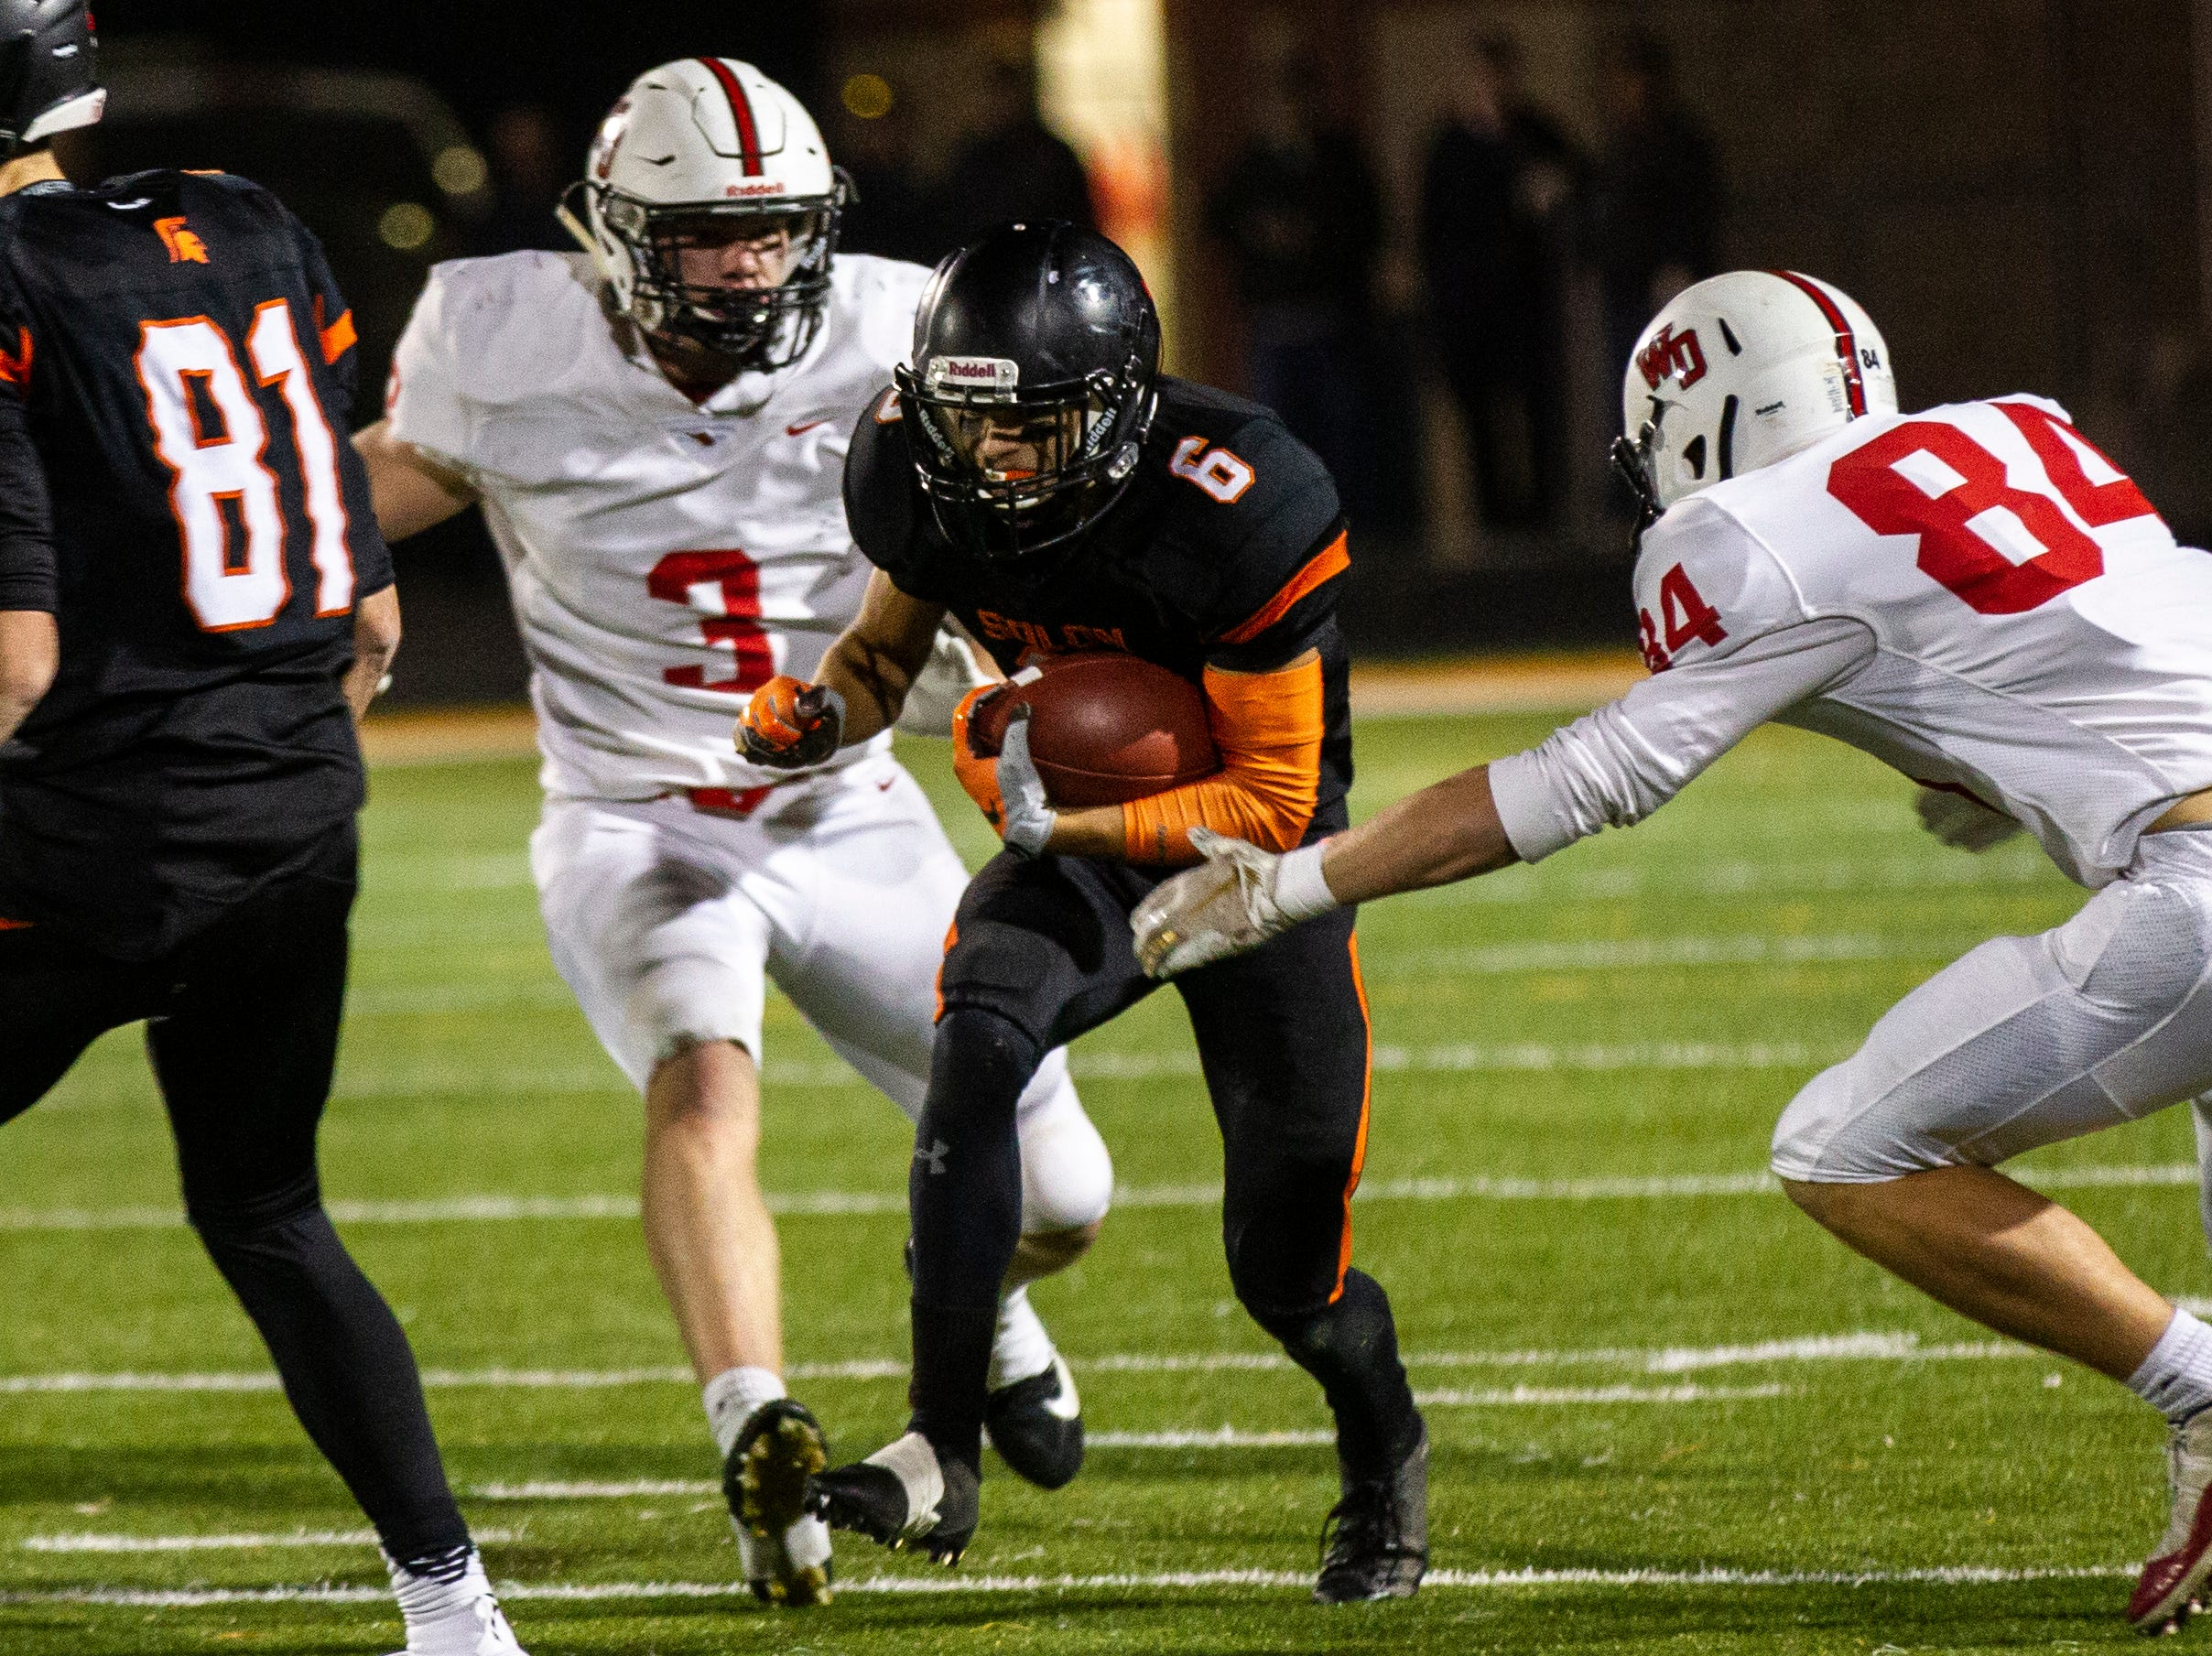 Solon's Dillon Holt (6) finds a hole between Western Dubuque's Jason Simon-Ressler (3) and Bryce Ploessl (84) during a Class 3A varsity first round playoff football game on Friday, Oct. 26, 2018, at Spartan Stadium in Solon, Iowa.